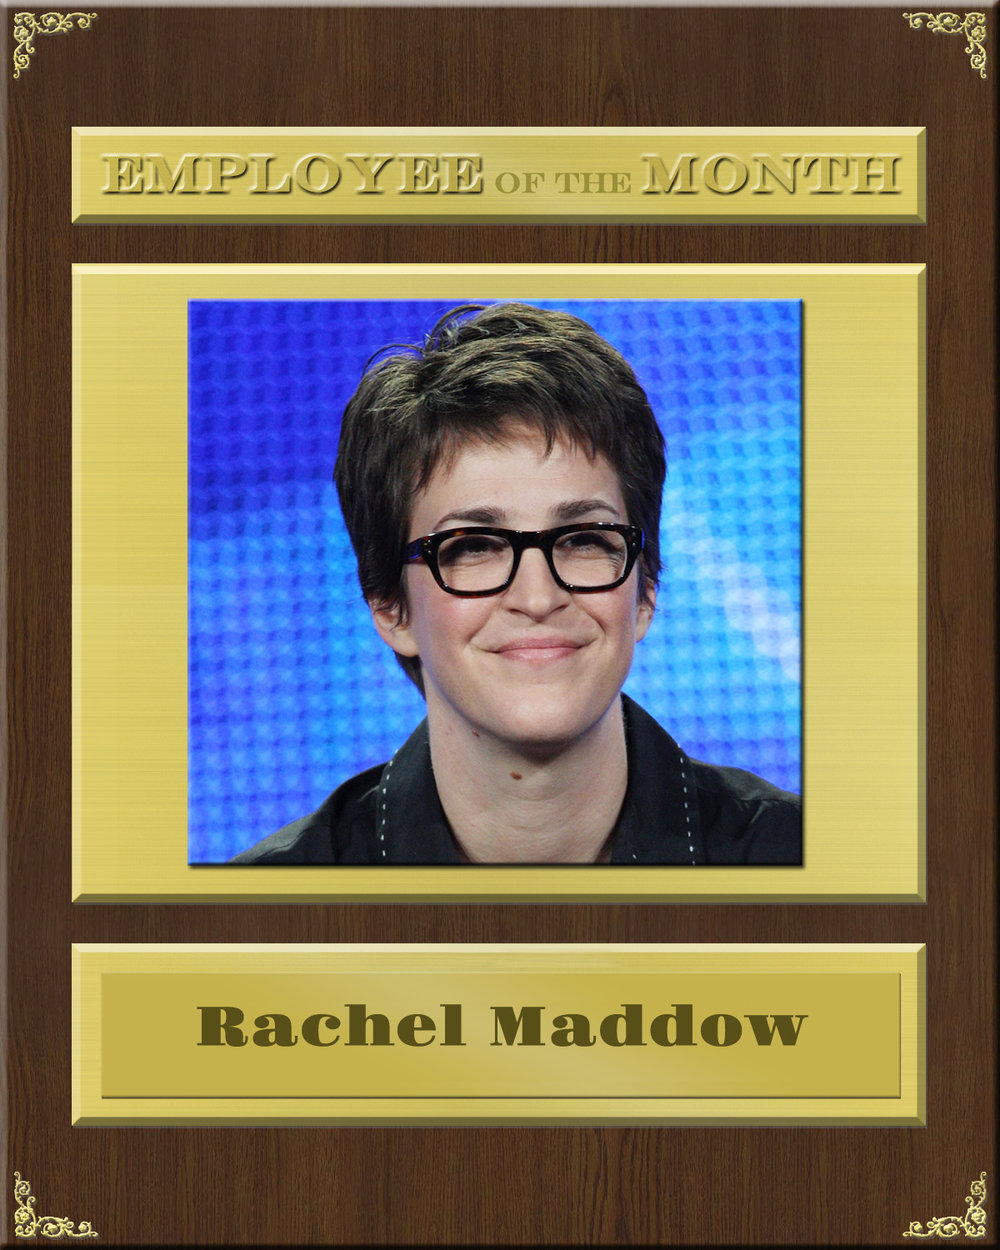 Maddow Employee Of The Month